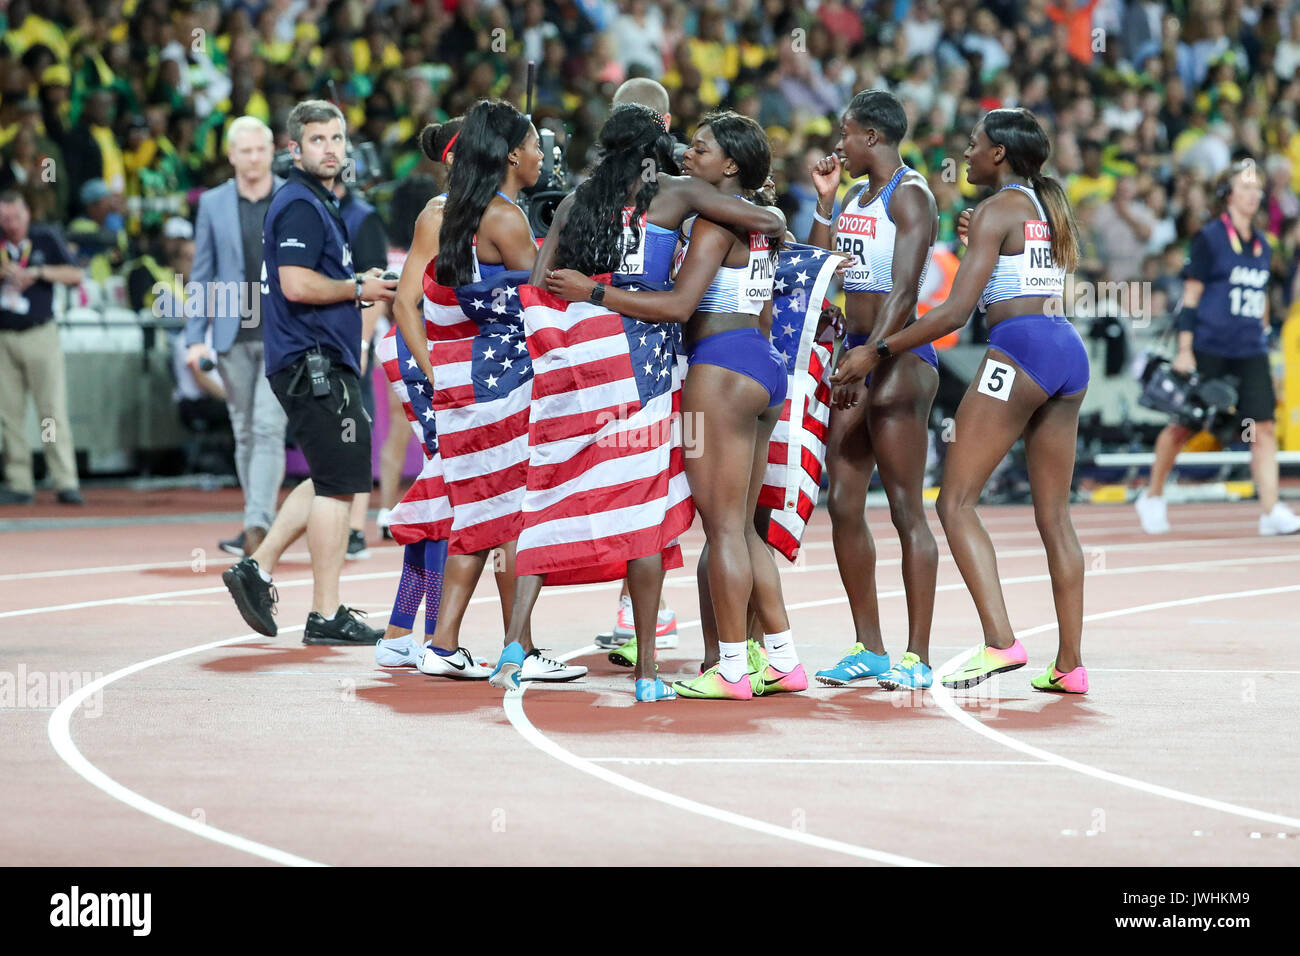 Team USA  and Team BG celebrate their victory in the women's 4x100m relay on day nine of the IAAF London 2017 world Championships at the London Stadium. © Paul Davey. - Stock Image